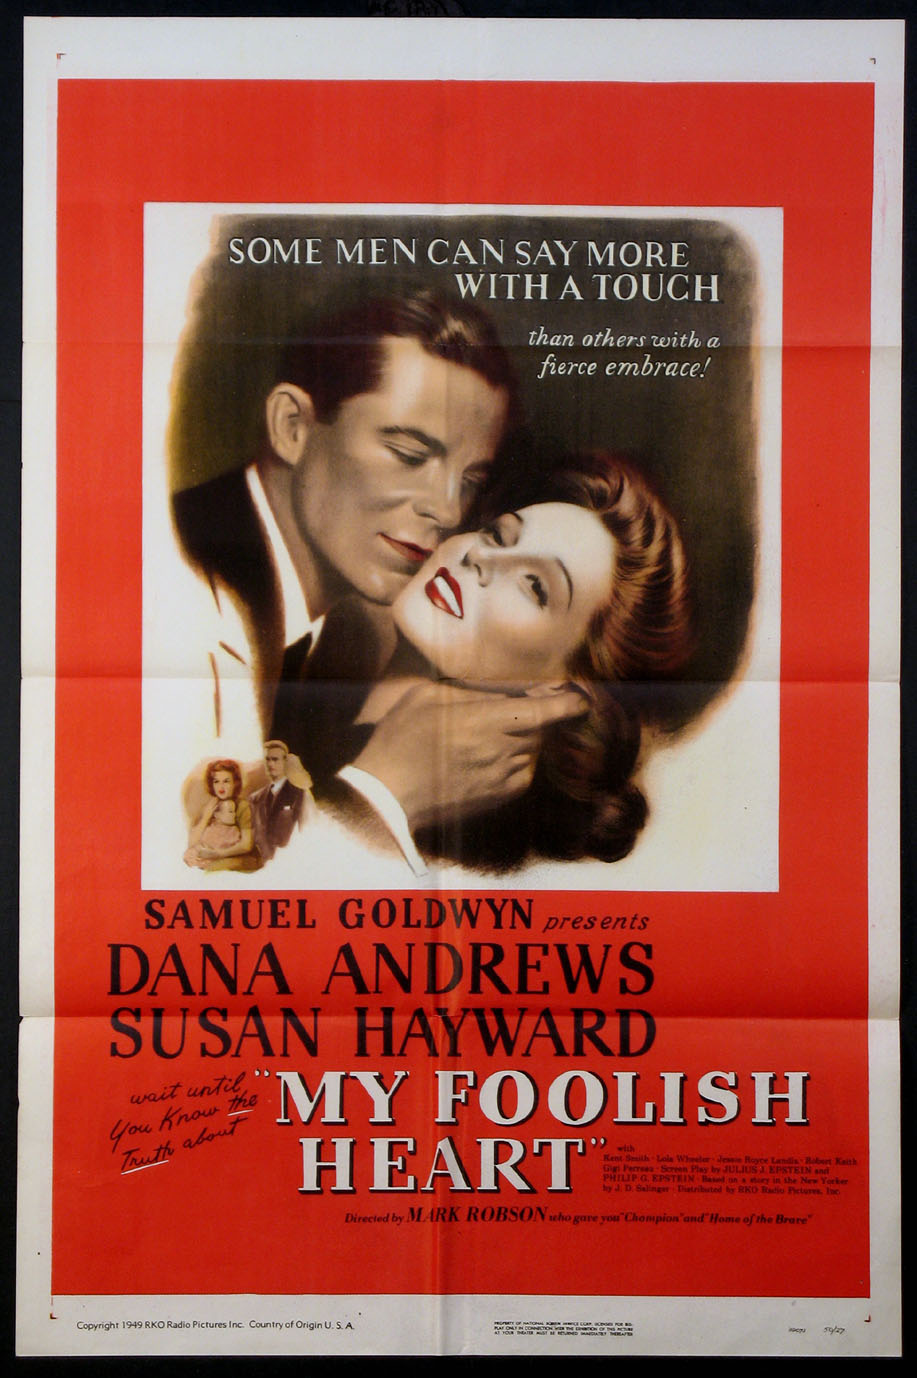 MY FOOLISH HEART @ FilmPosters.com